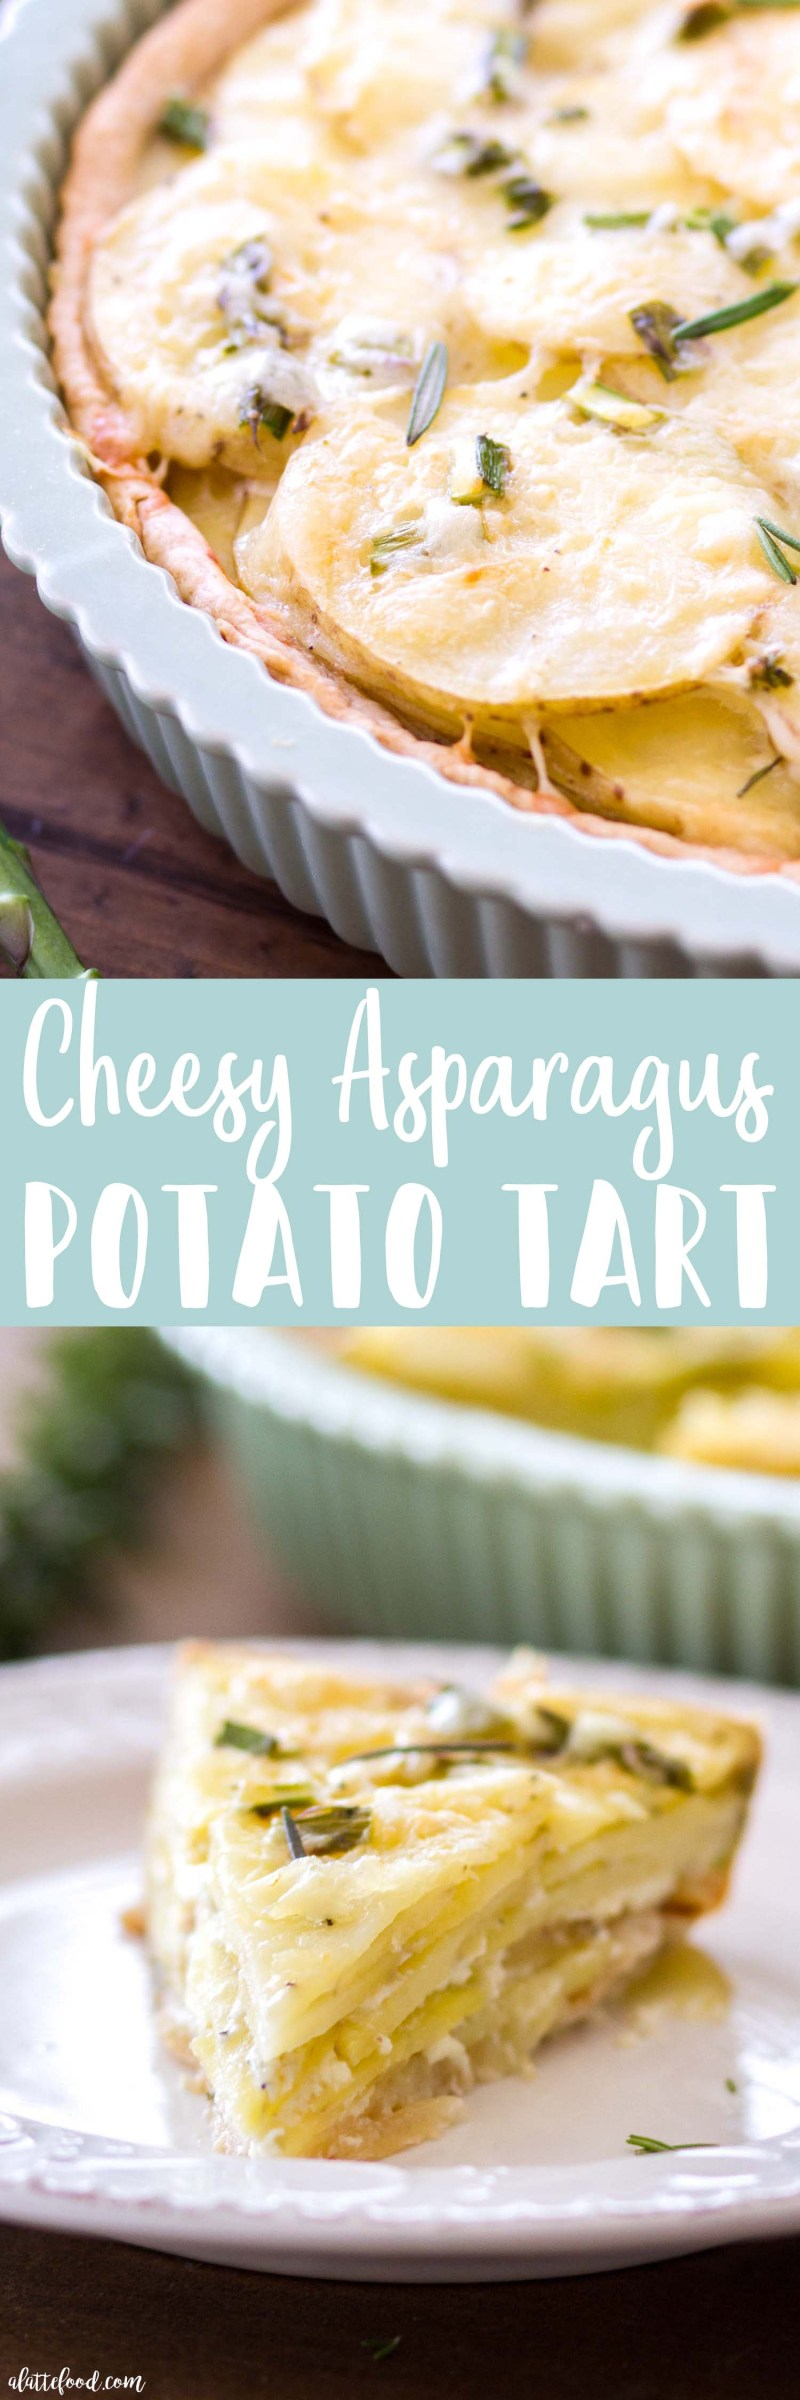 This Cheesy Asparagus Potato Tart is a savory tart filled with sliced white potatoes, asparagus, sharp white cheddar, and fresh rosemary! This potato tart is full of rich flavor, making it a perfect brunch or dinner dish for fall!